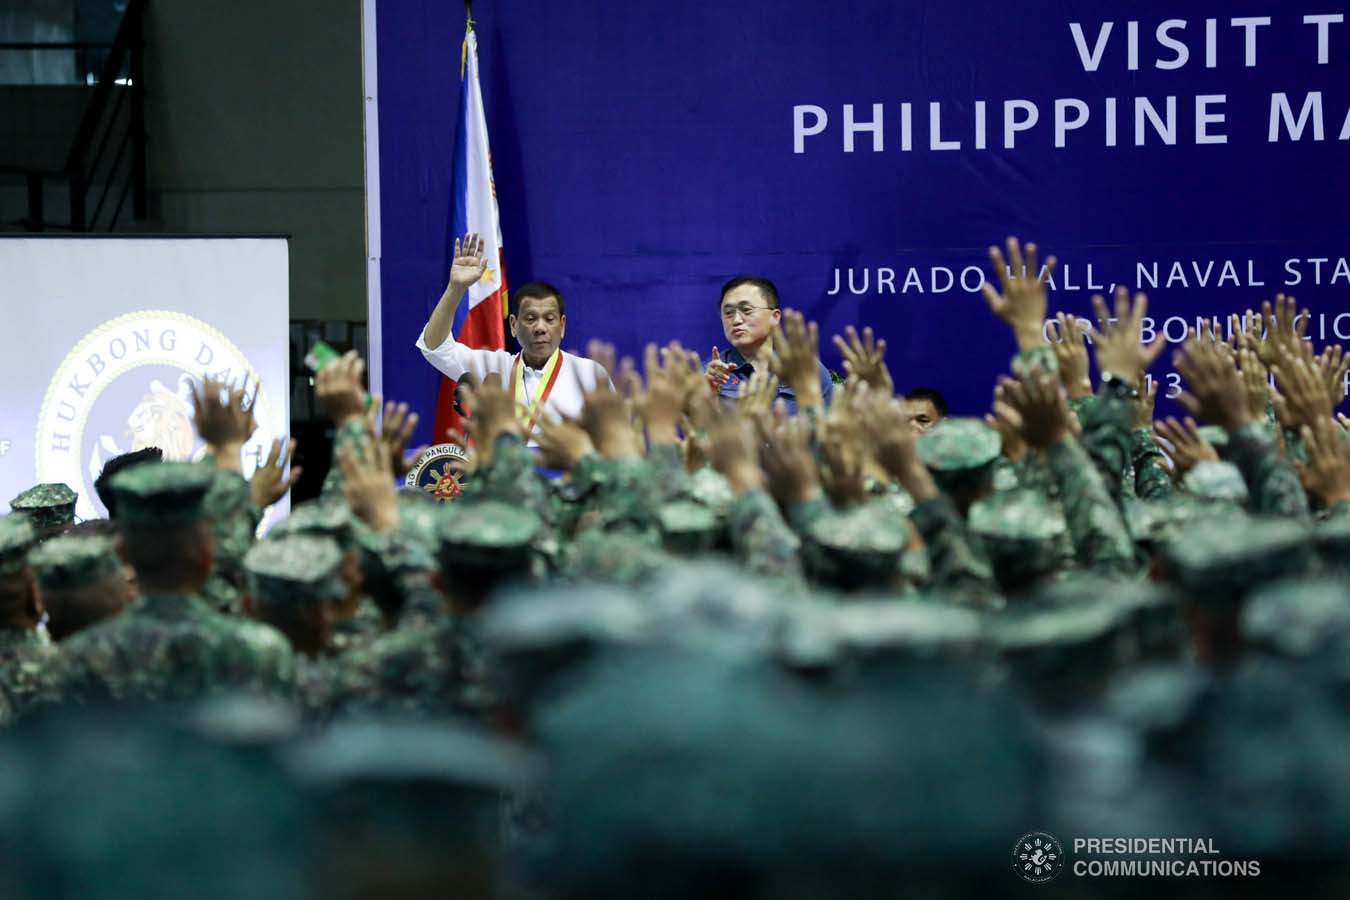 President Rodrigo Roa Duterte delivers a speech during his visit to the Philippine Marine Corps headquarters at Fort Bonifacio in Taguig City on January 13, 2020. TOTO LOZANO/PRESIDENTIAL PHOTO